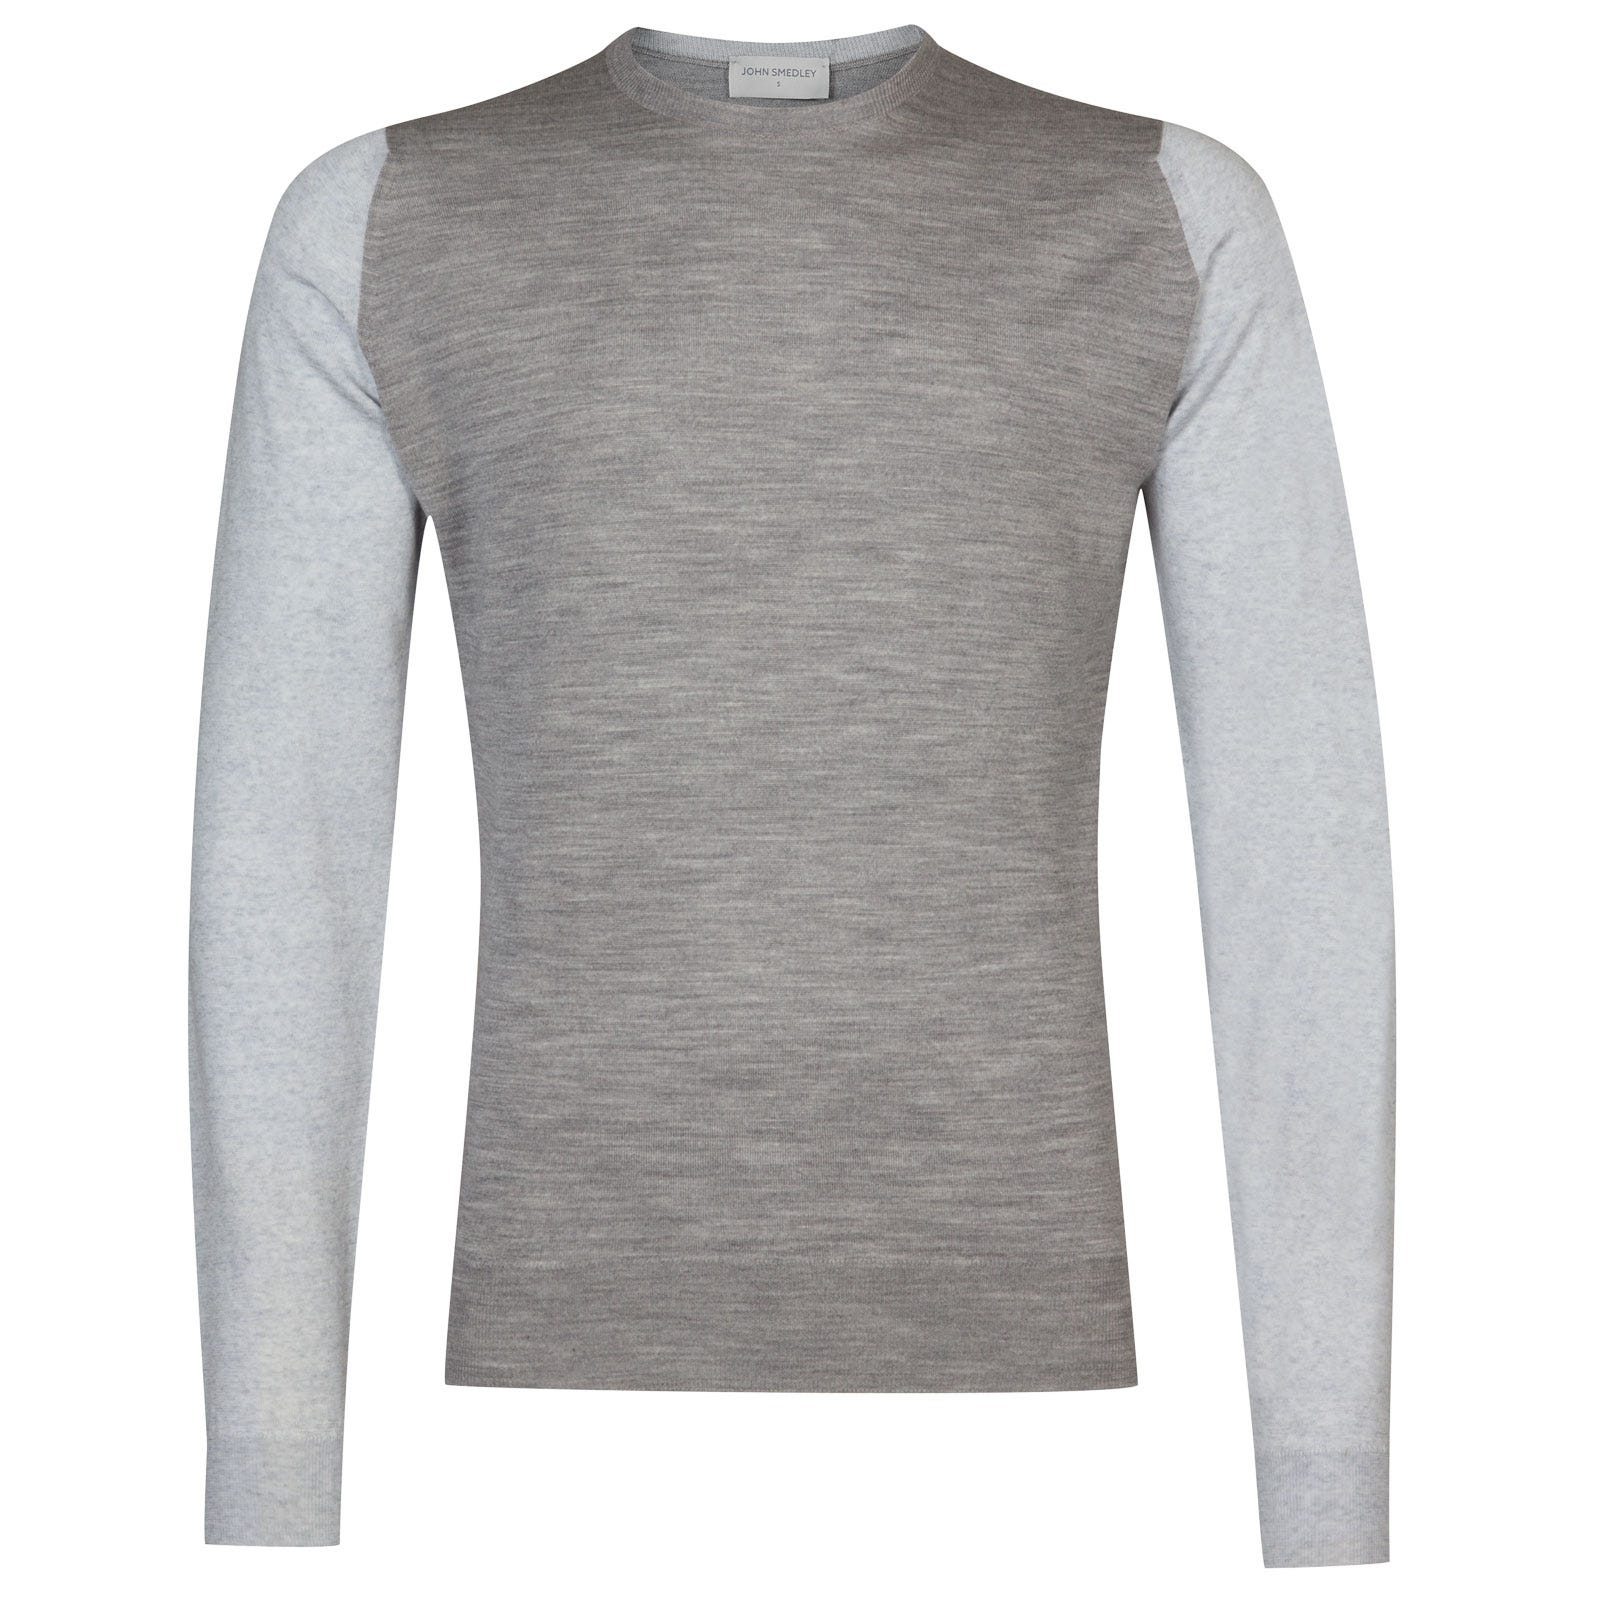 John Smedley Hindlow Extra Fine Merino Pullover in Silver-M